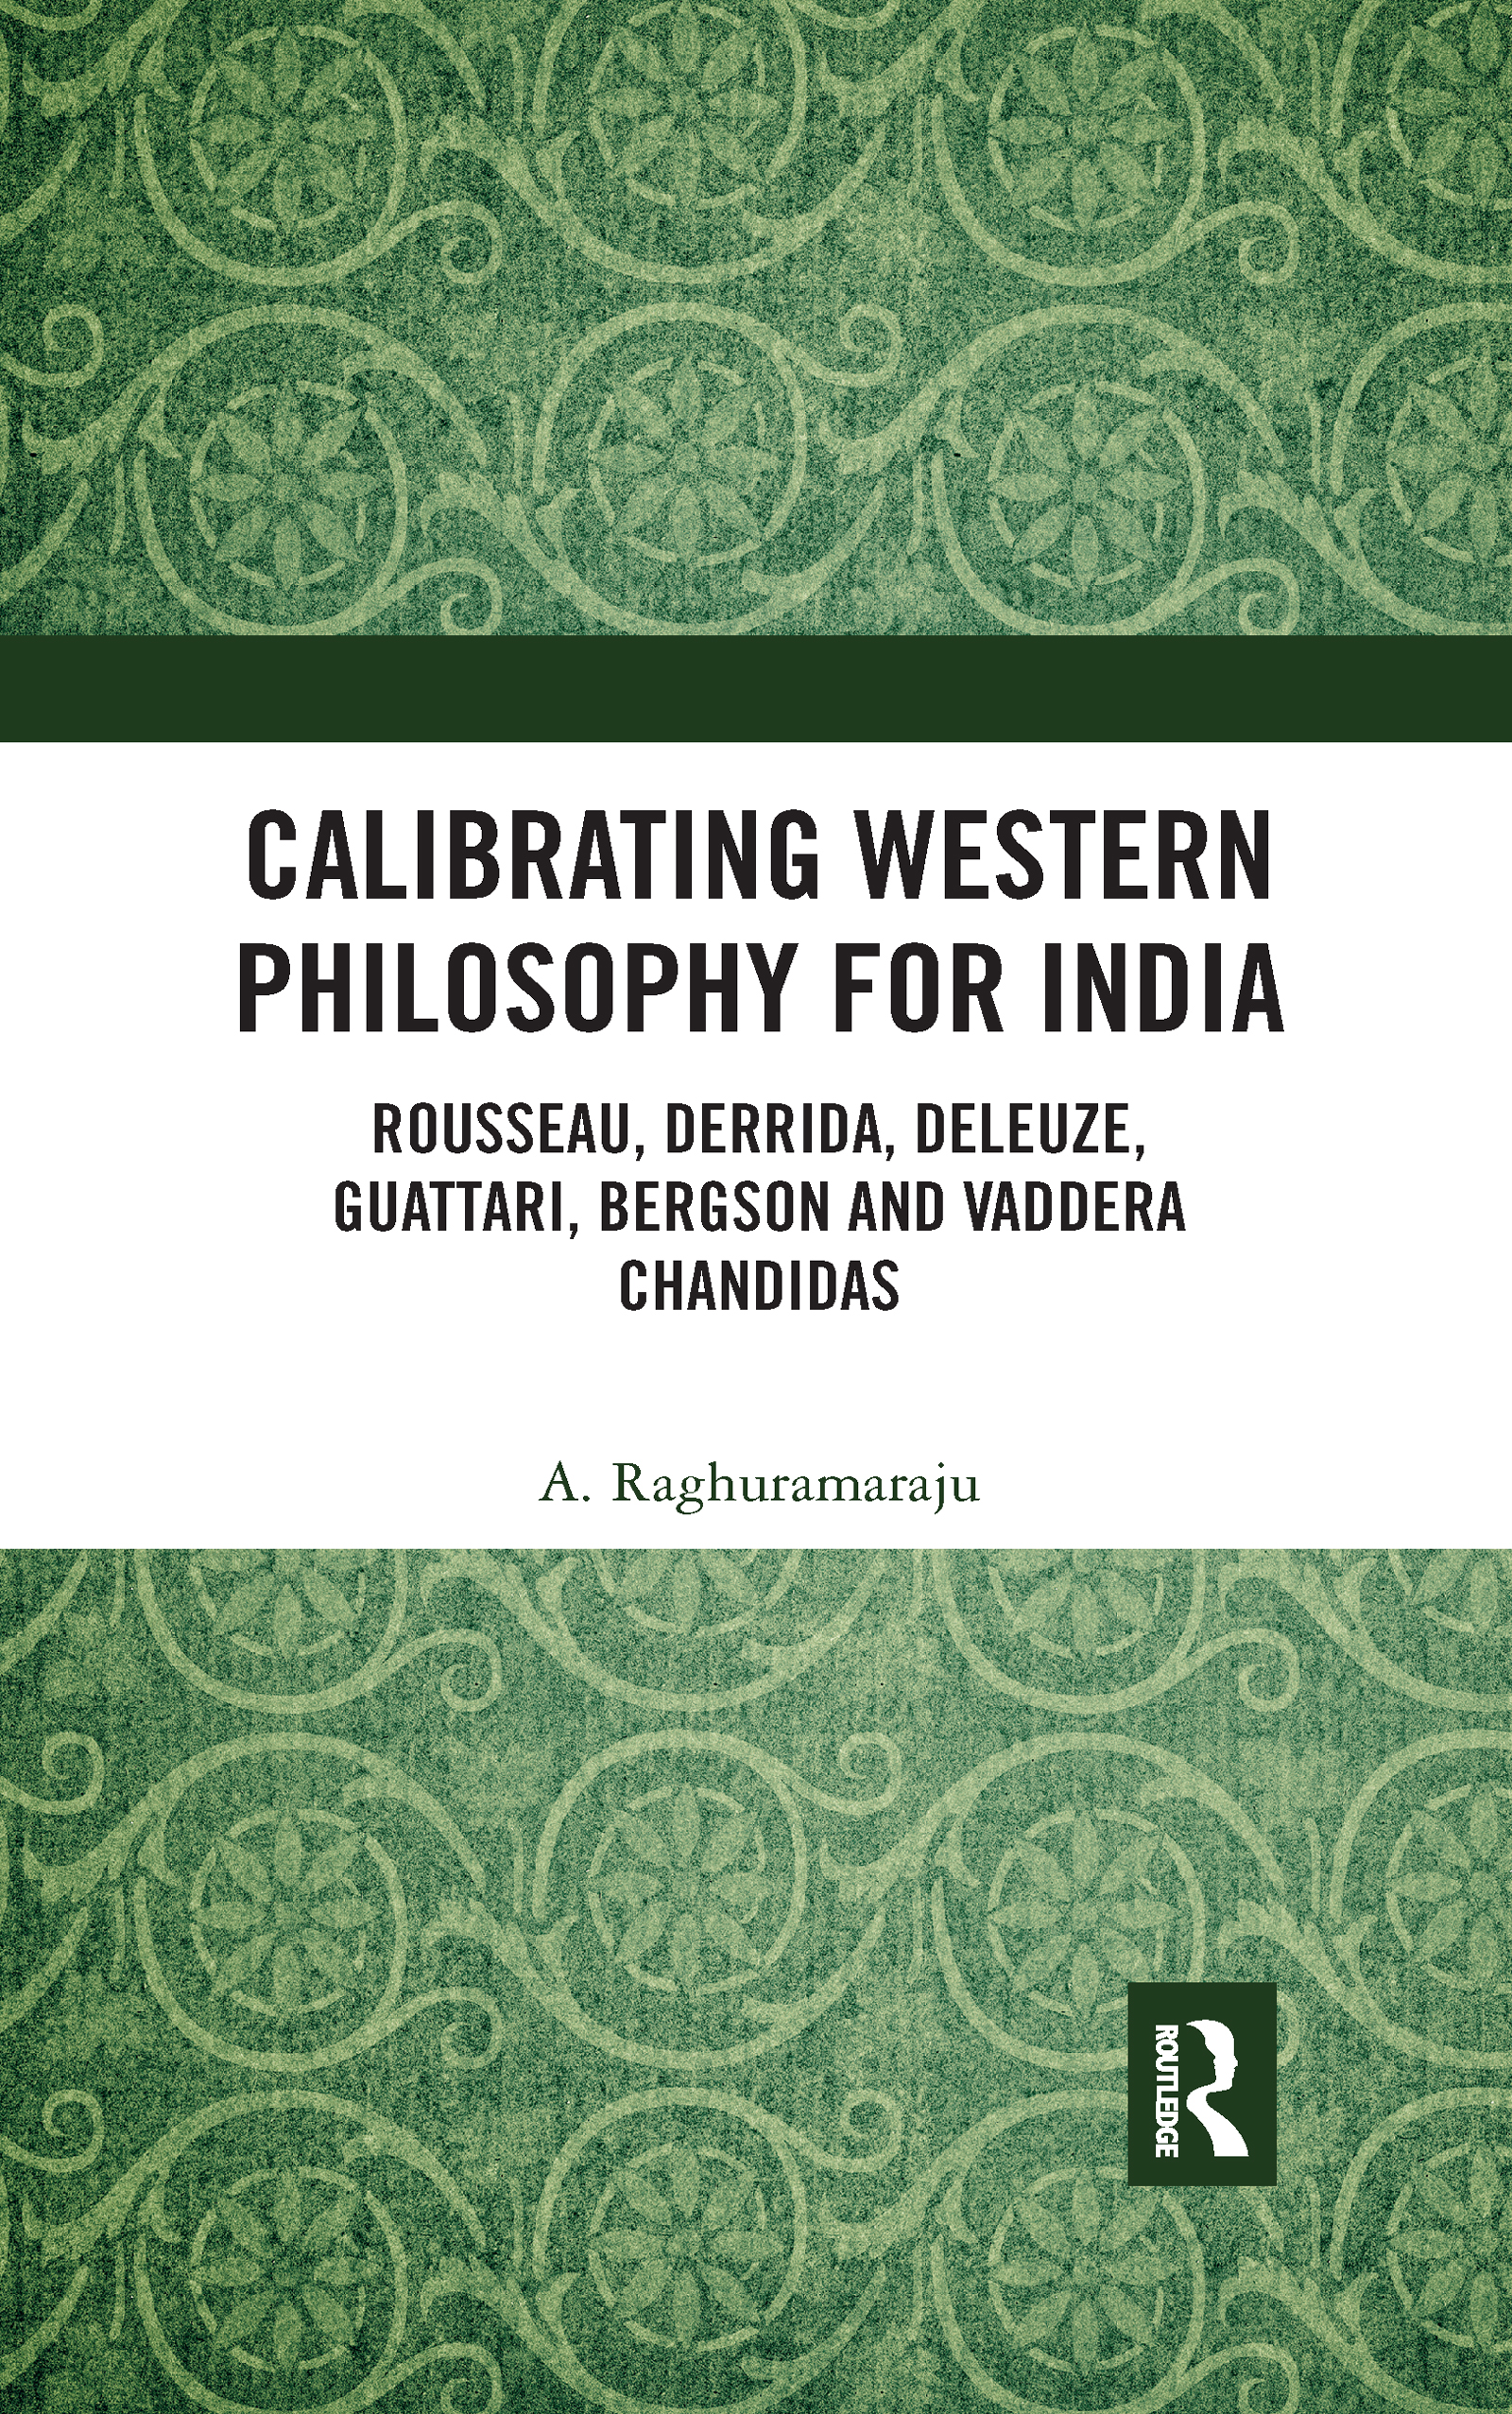 Calibrating Western Philosophy for India